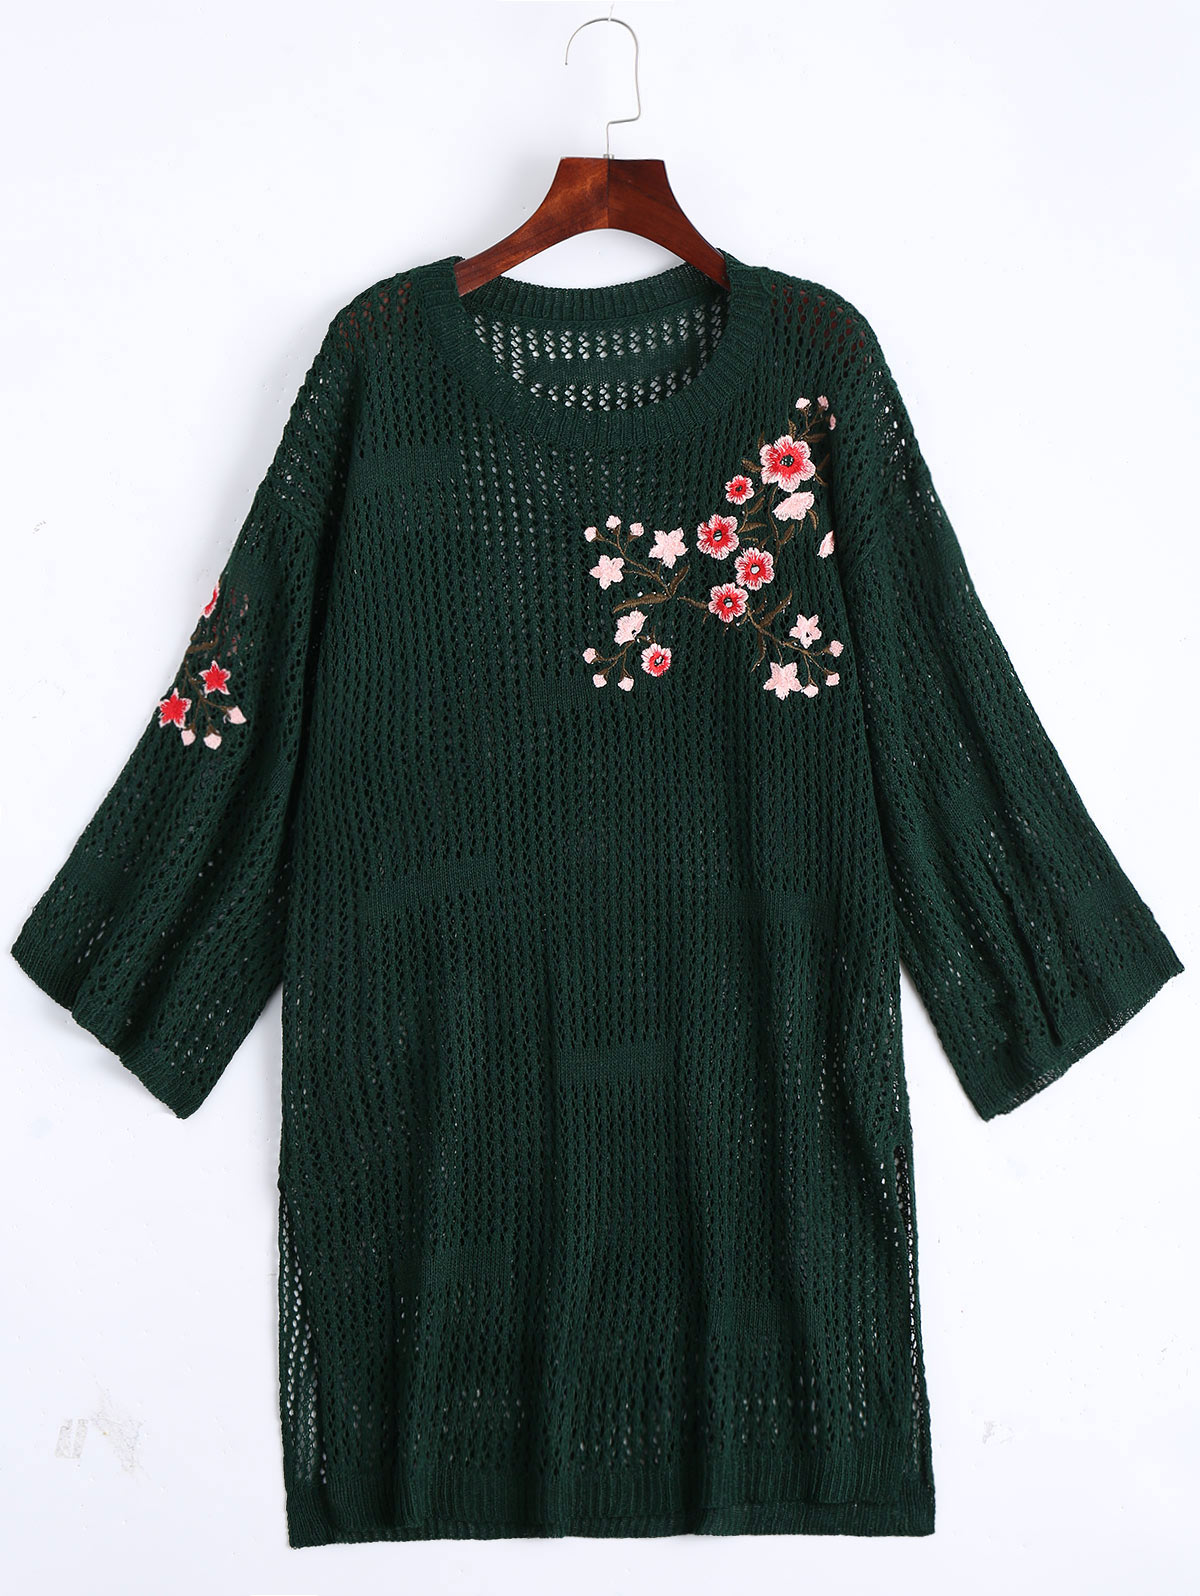 Gamiss Knitted Sweater Floral Embroidered Dress Women Oversize ...